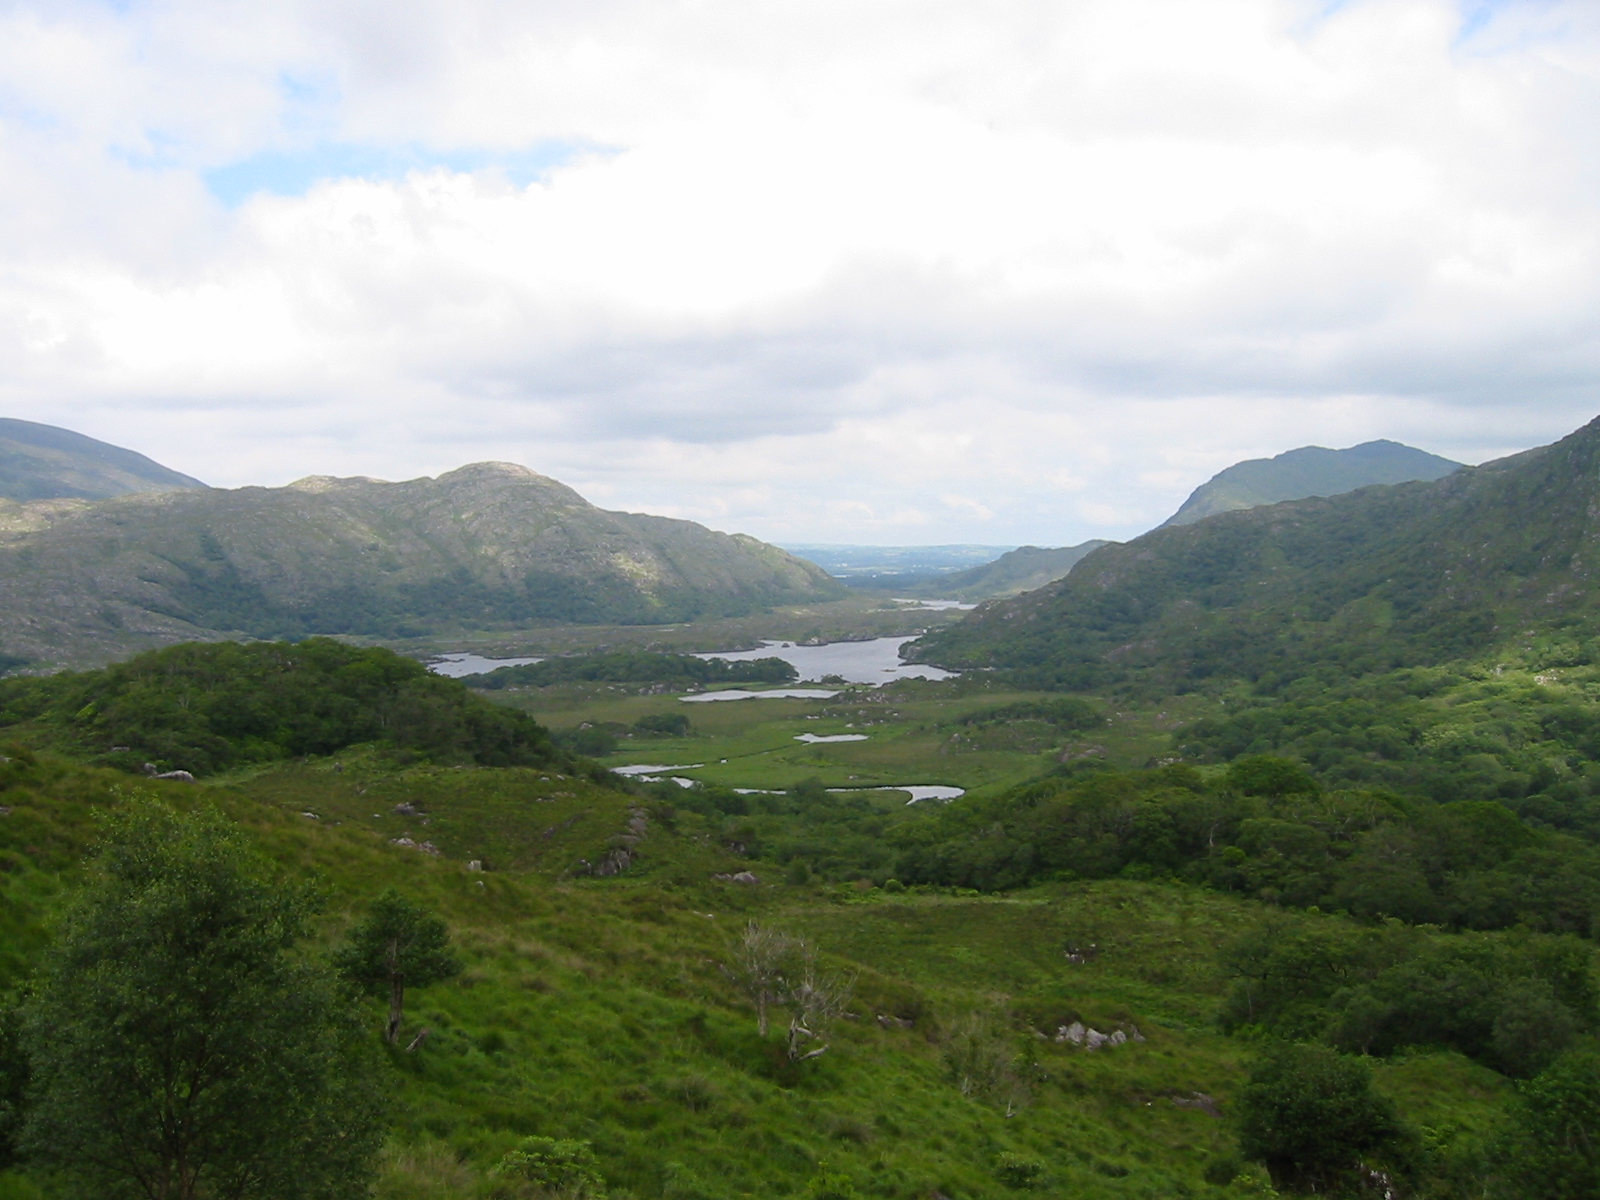 The Lakes of Killarney, County Kerry, Ireland